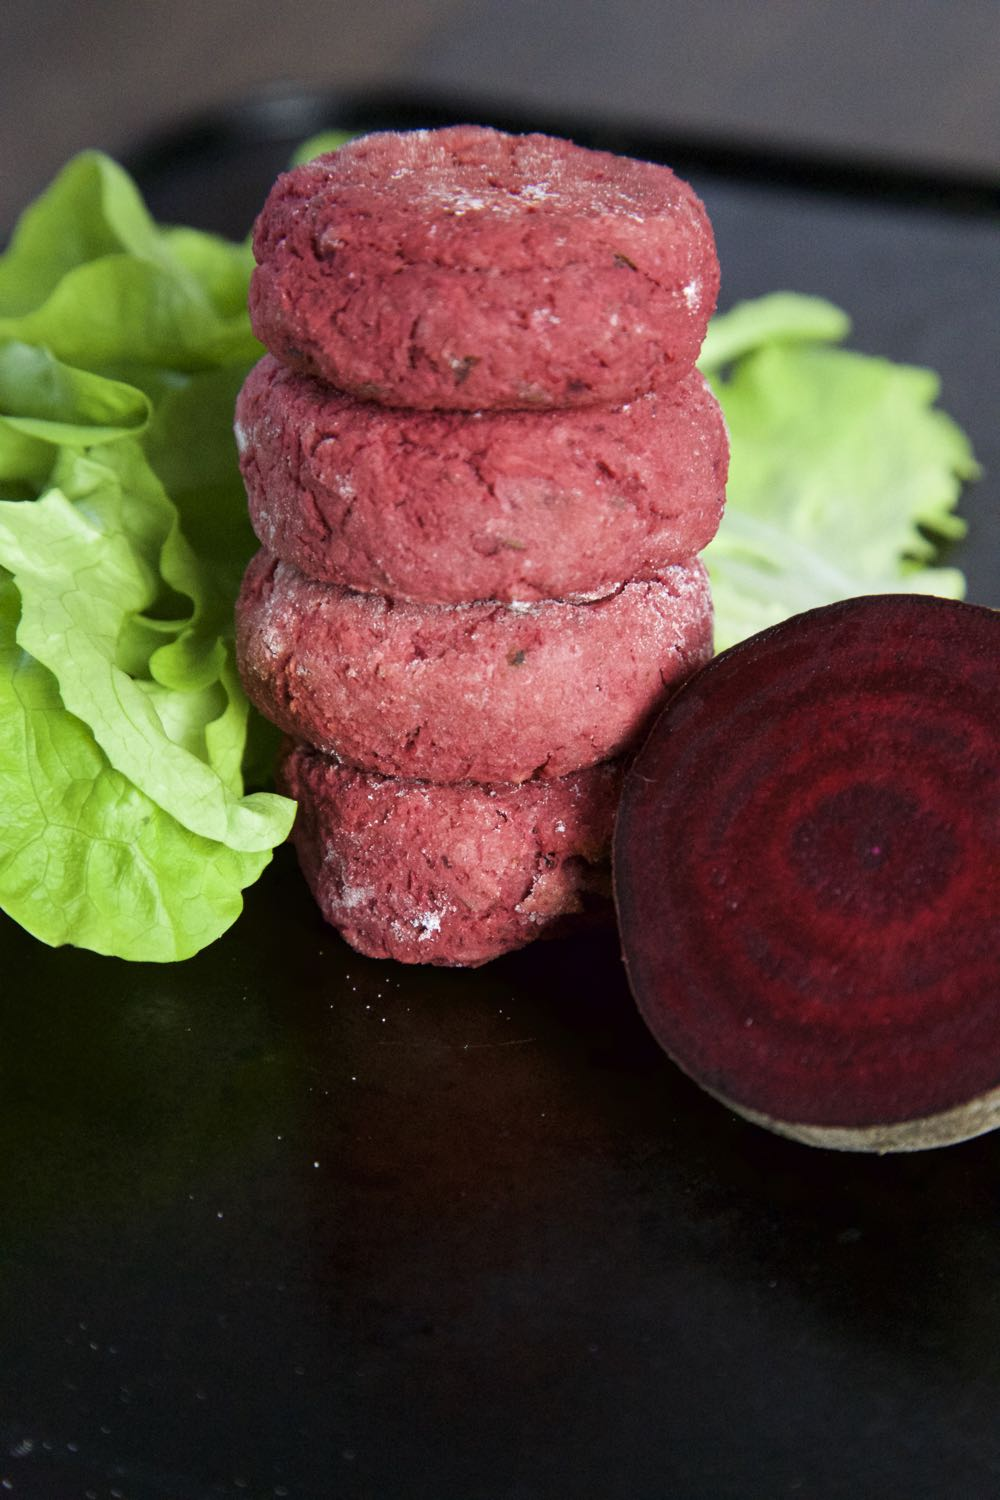 Vegan Beetroot Falafel Recipe - Ruby red beetroot falafel.